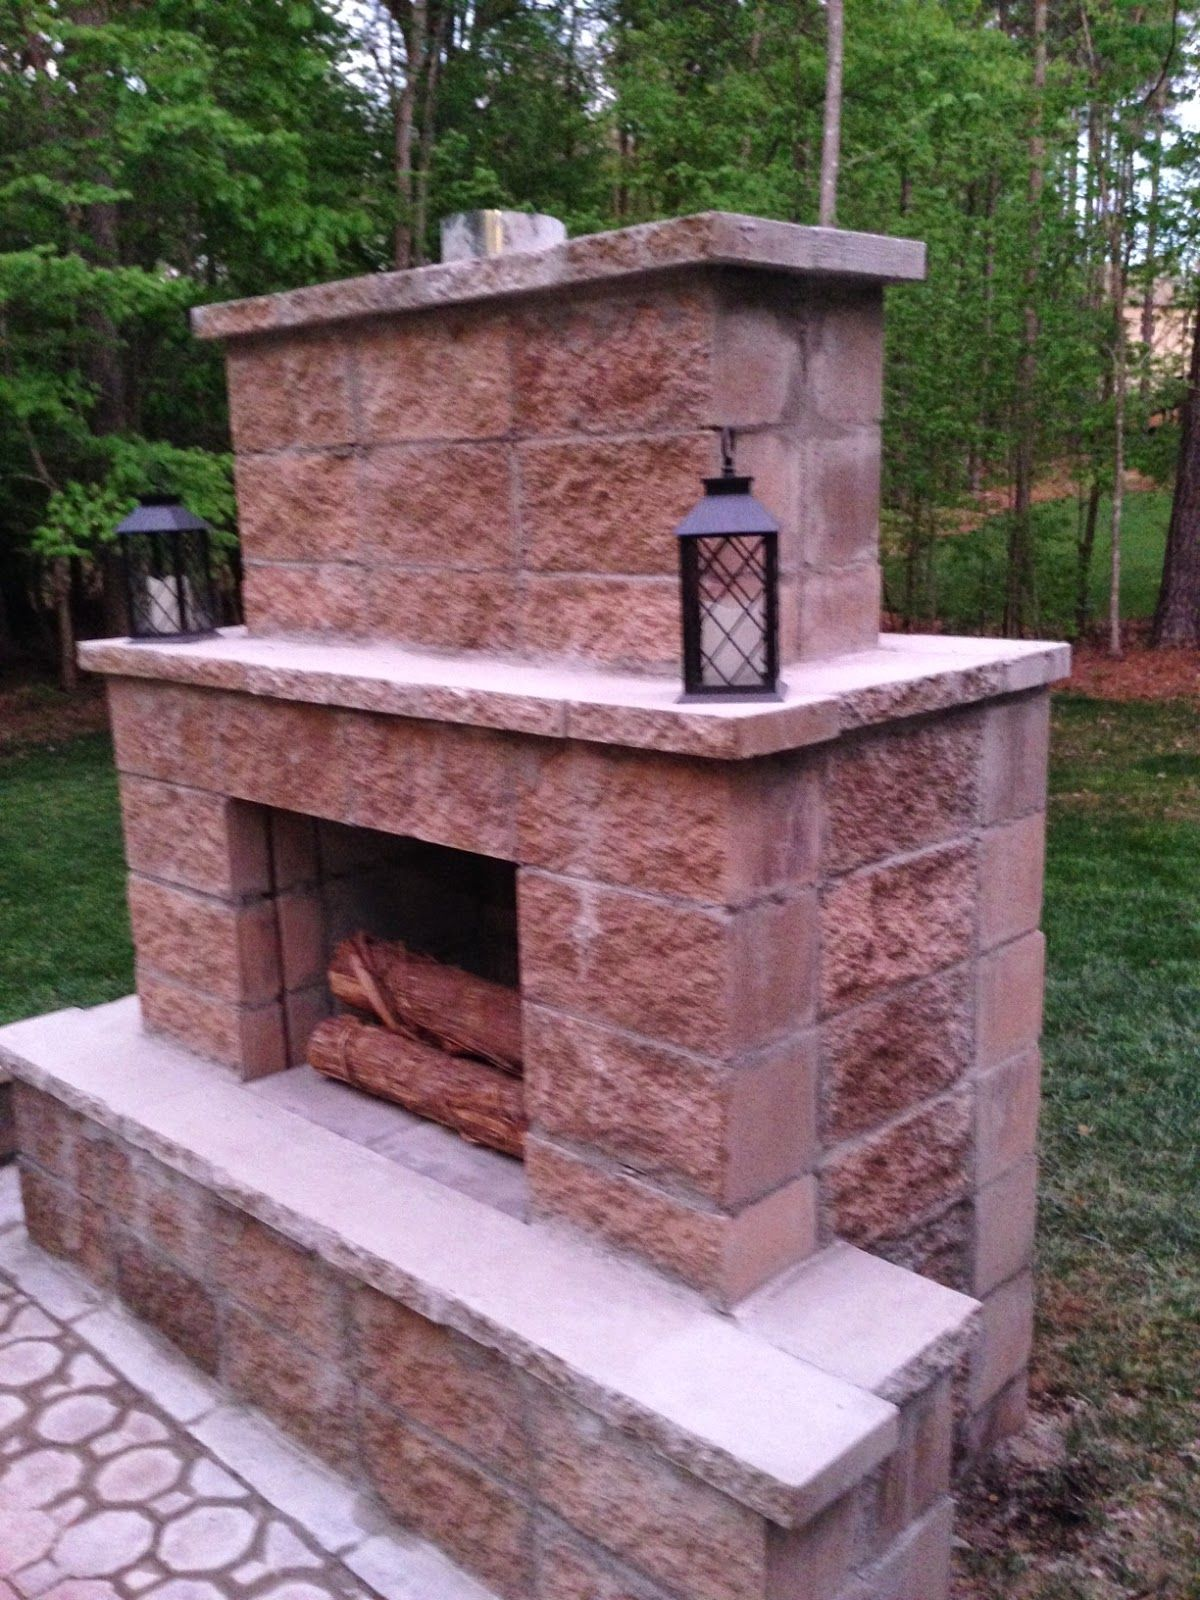 Diy outdoor fireplace for under 200 life in the barbie